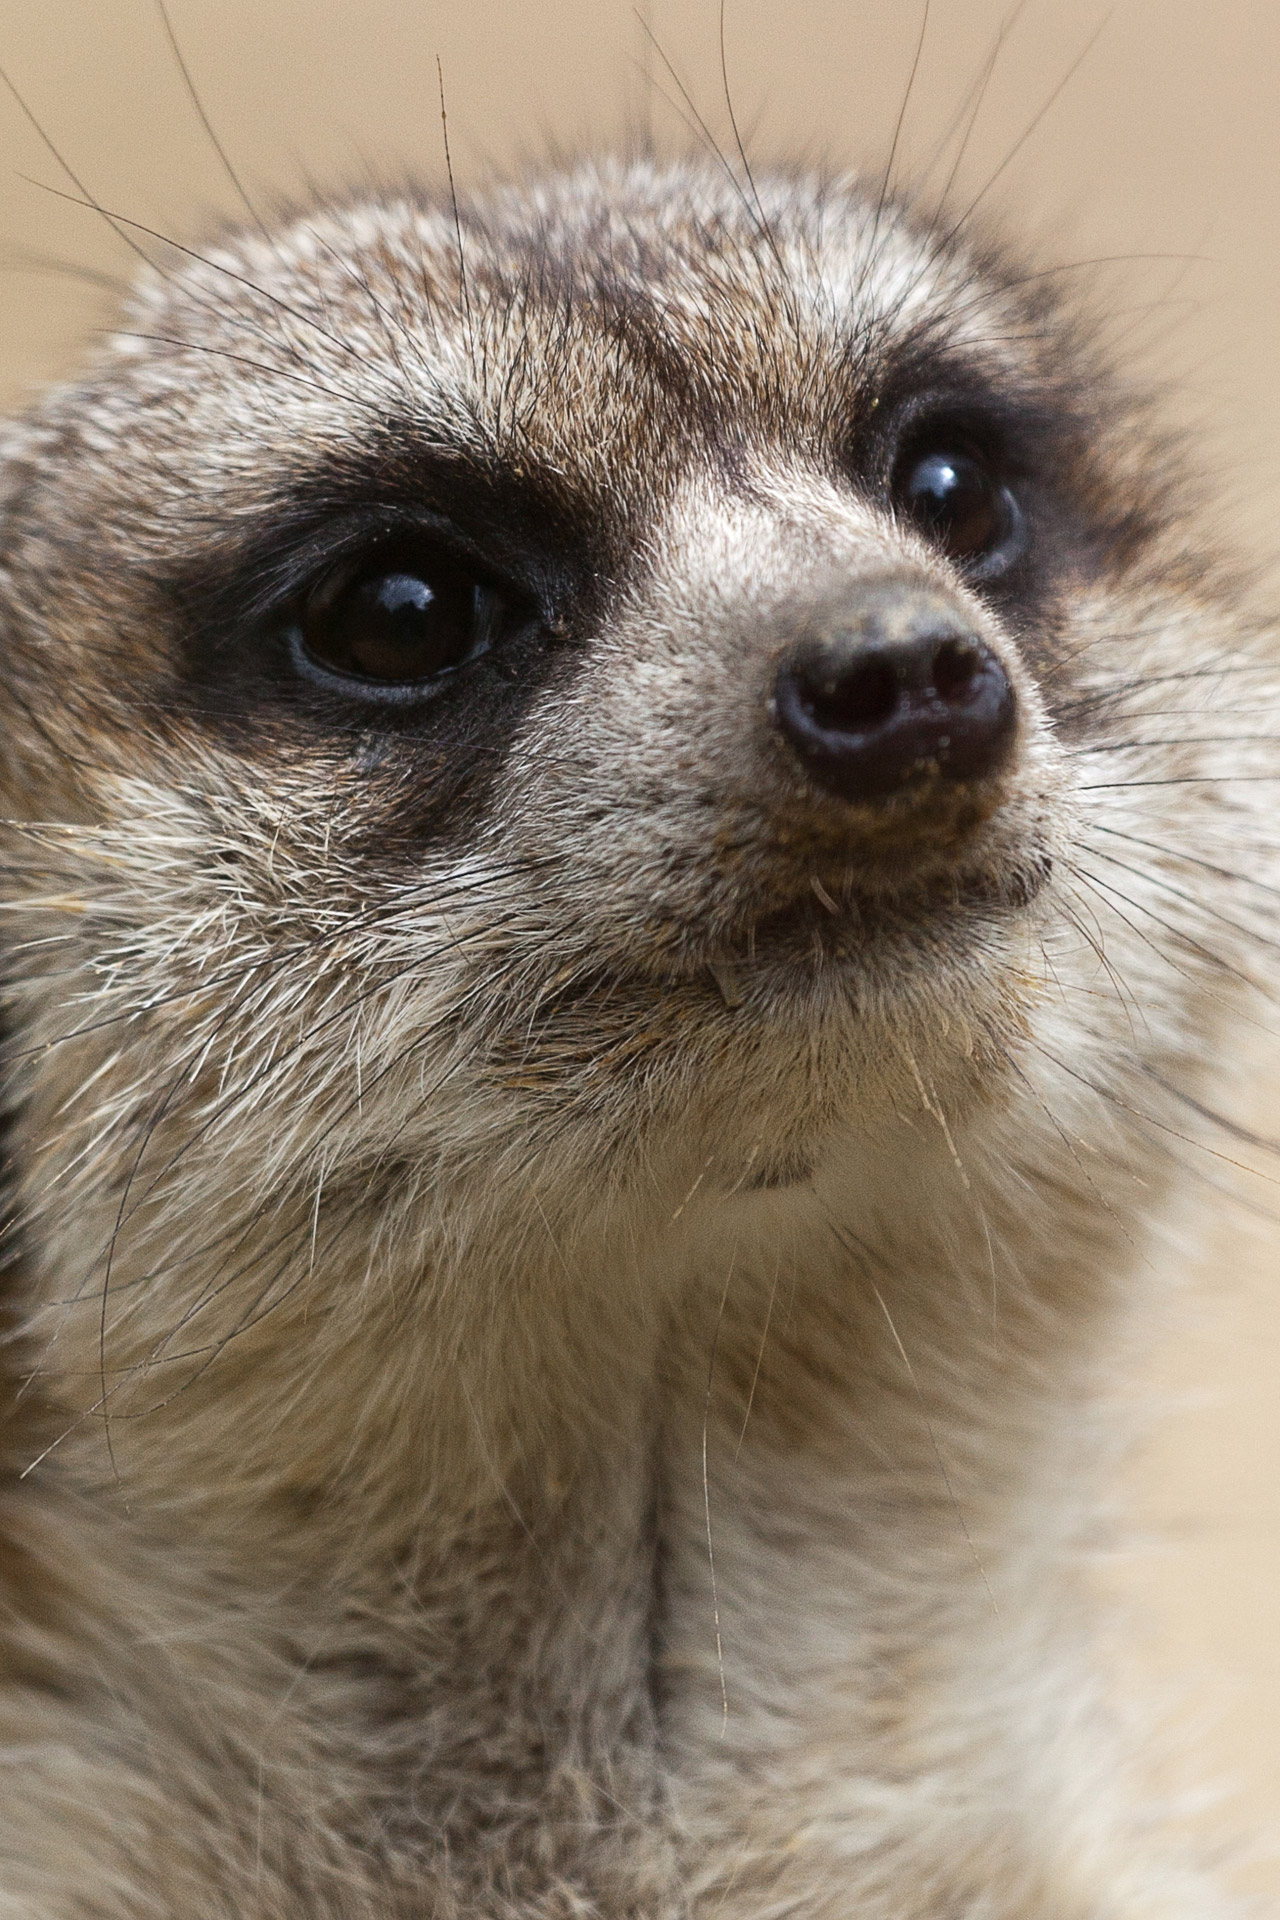 Latest Cute Baby Wallpaper Meerkat Portrait Free Stock Photo Public Domain Pictures